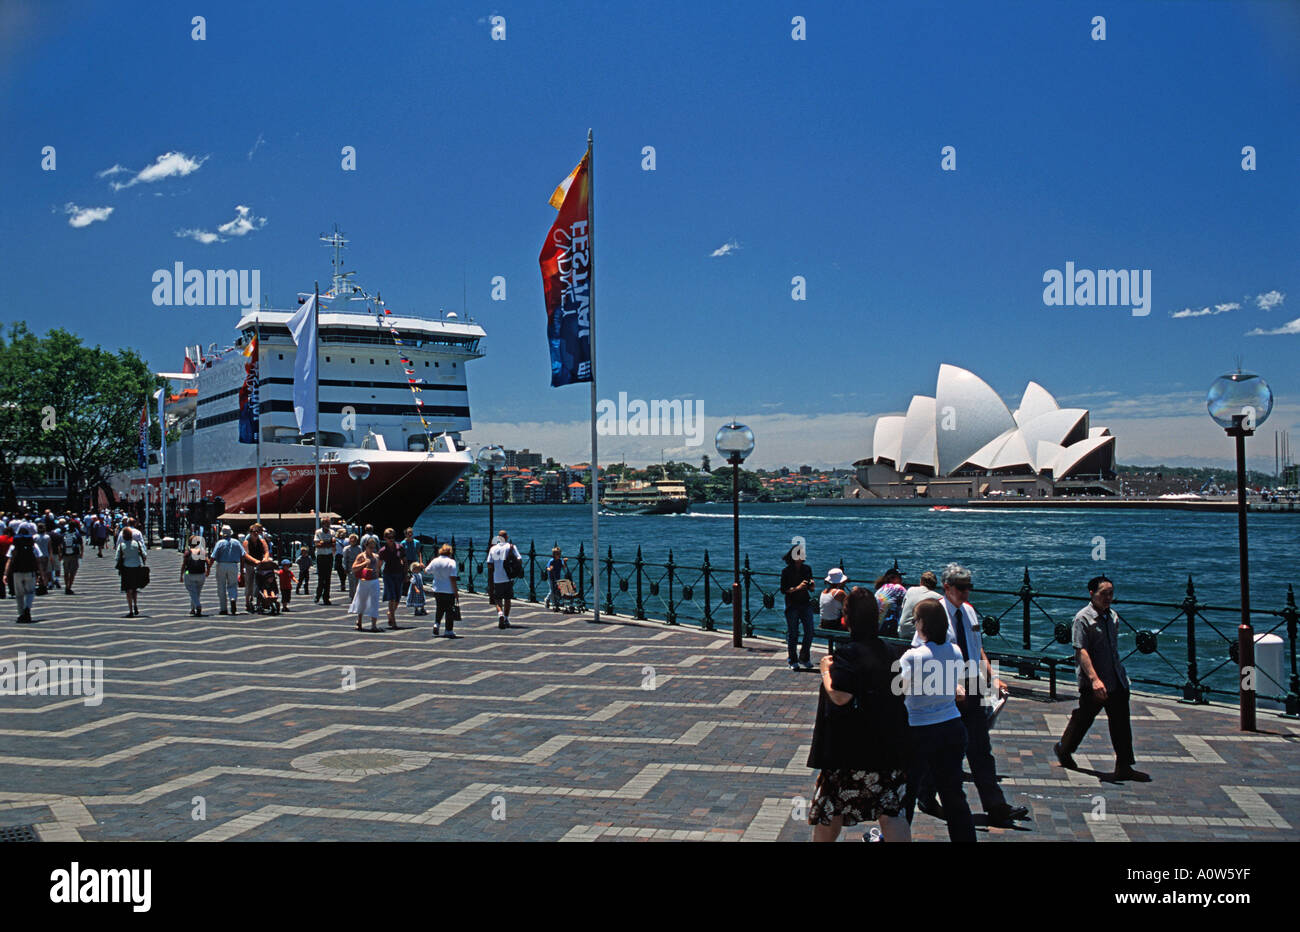 View of the famous Sydney Opera House Sydney Harbour Sydney Australia Spirit of Tasmania ship moored in the foreground - Stock Image